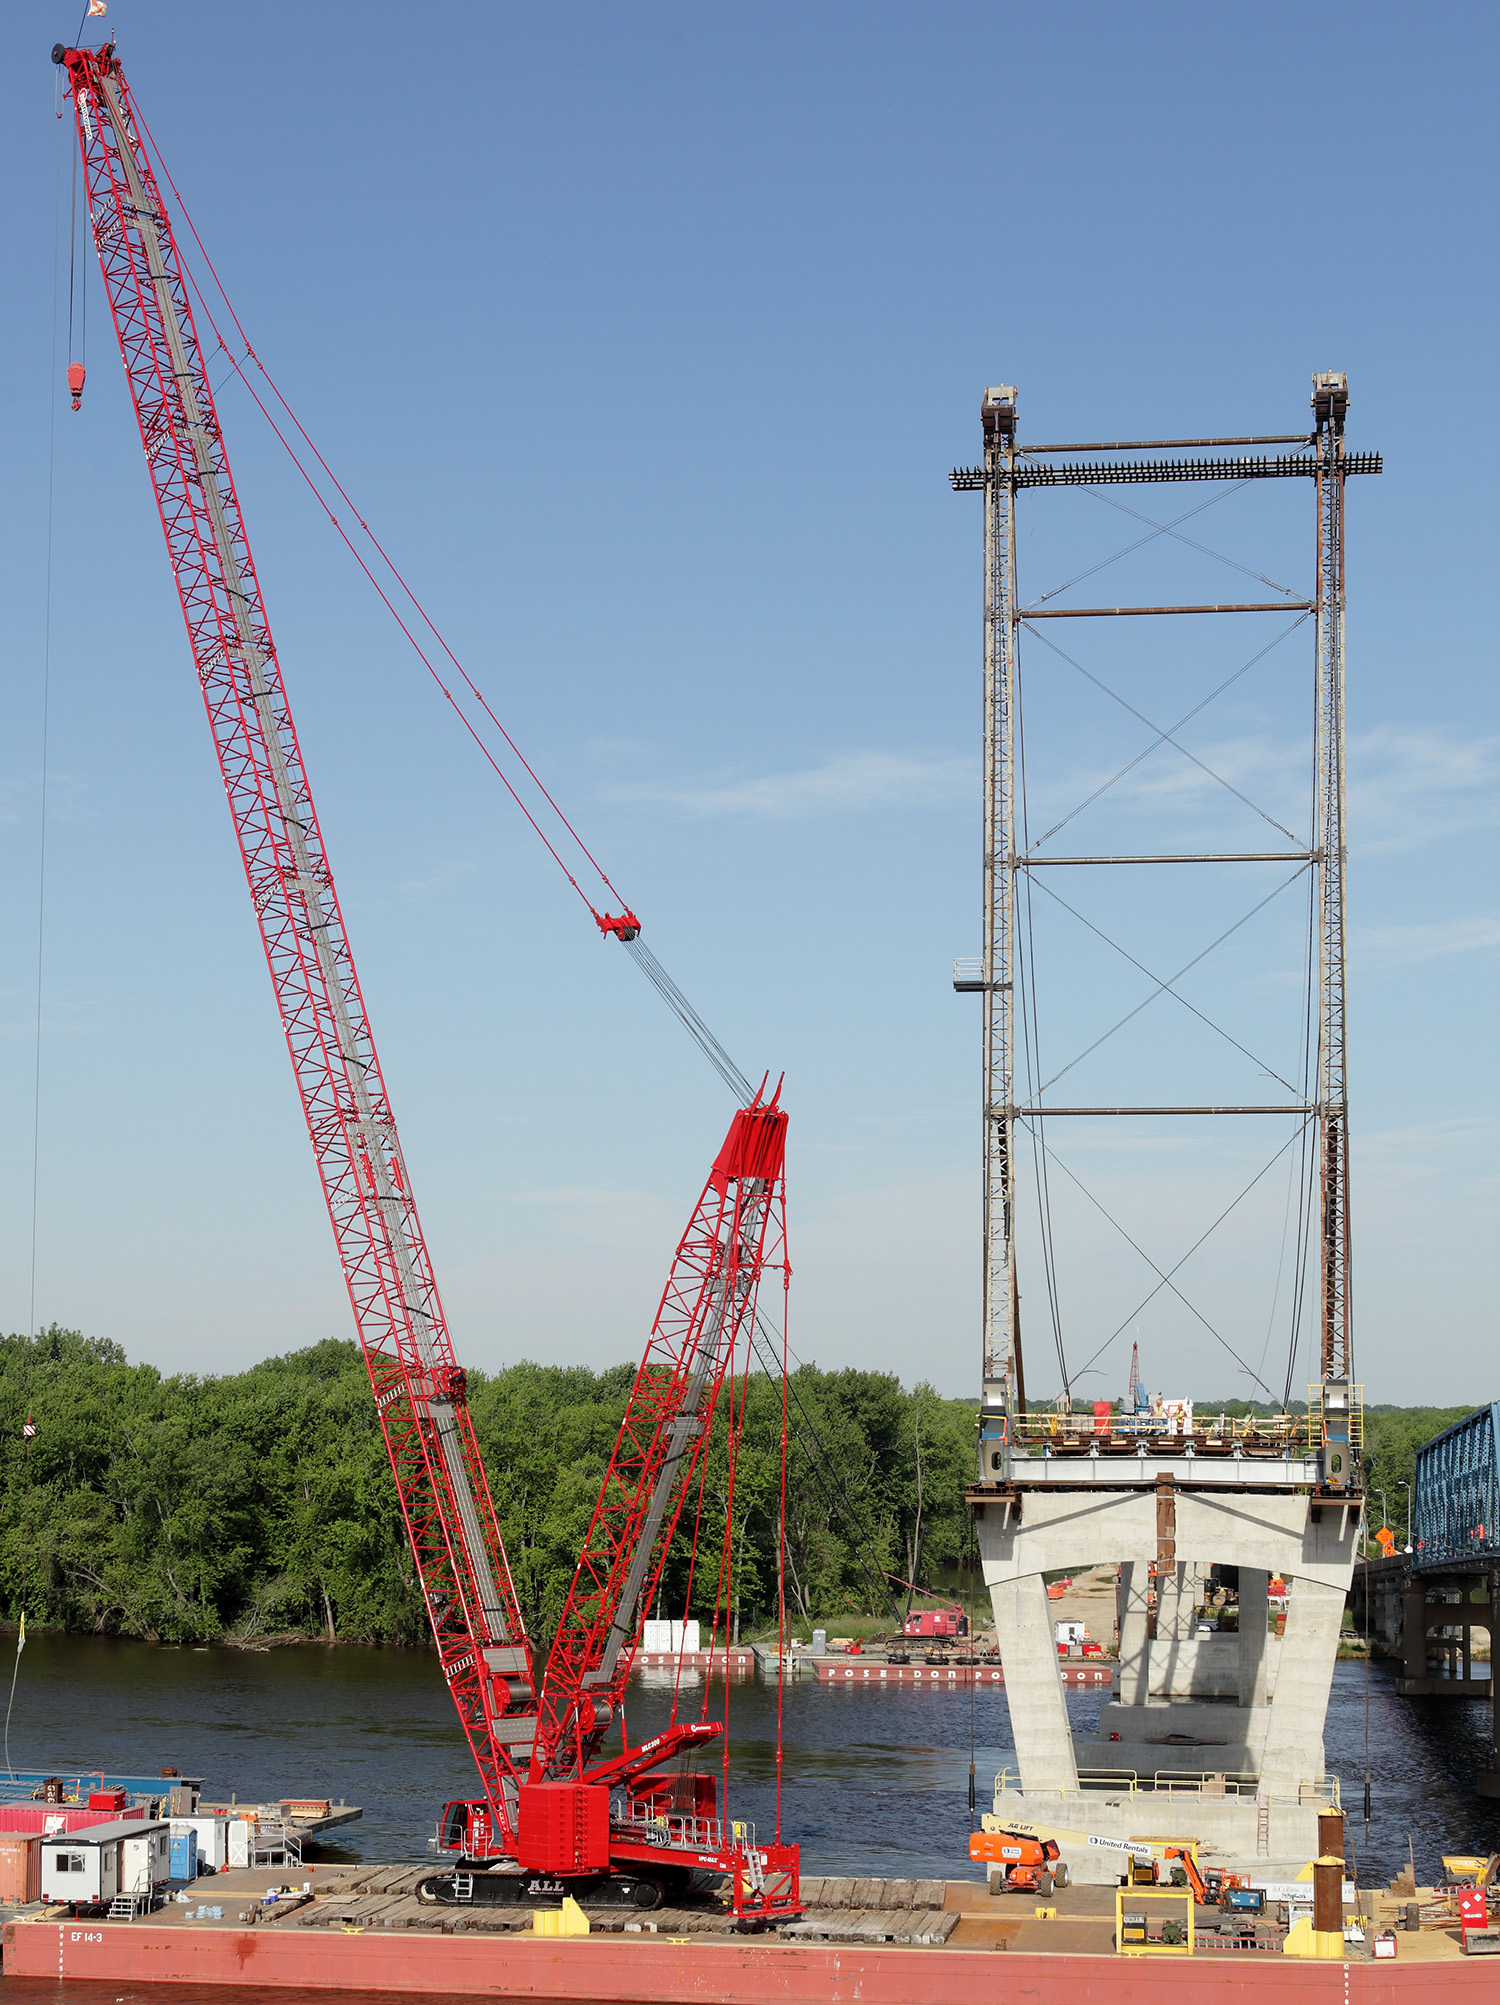 When the Manitowoc MLC300 crawler crane debuted with Variable Position Counterweight (VPC) and VPC-MAX heavy lift attachment, one of its unique selling points was the crane's barge-lifting capabilities. The reduced footprint and floating counterweight meant that it would be much more efficient for lifters to barge-mount a crawler crane. Contracting teams could erect the crane onto smaller water-based barges because the machine automatically adjusts its center of gravity for each lift.